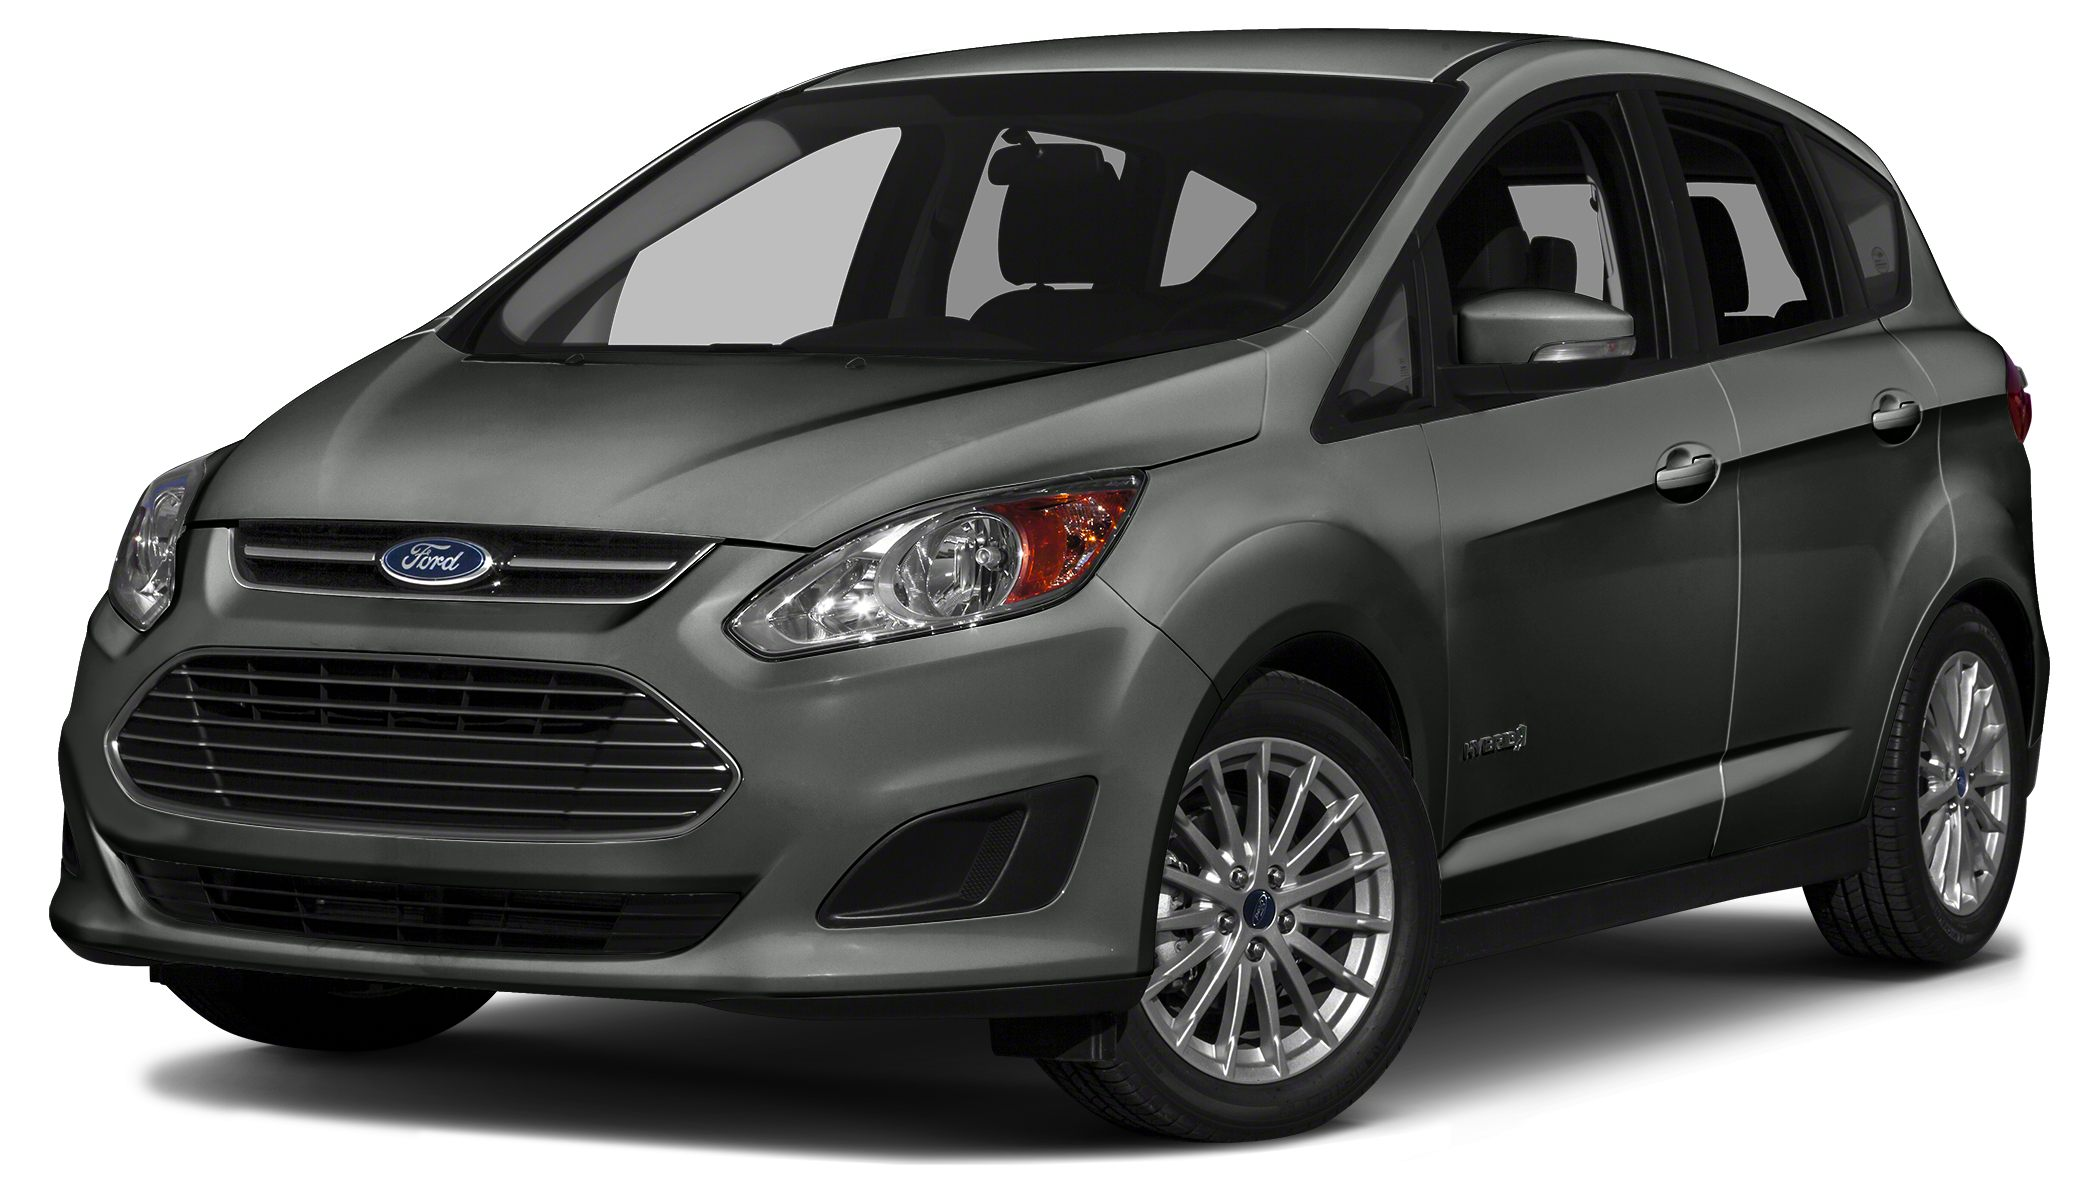 2015 Ford C-Max Hybrid SEL The C-MAX Hybrid and C-MAX Energi plug-in hybrid - the all-new family o